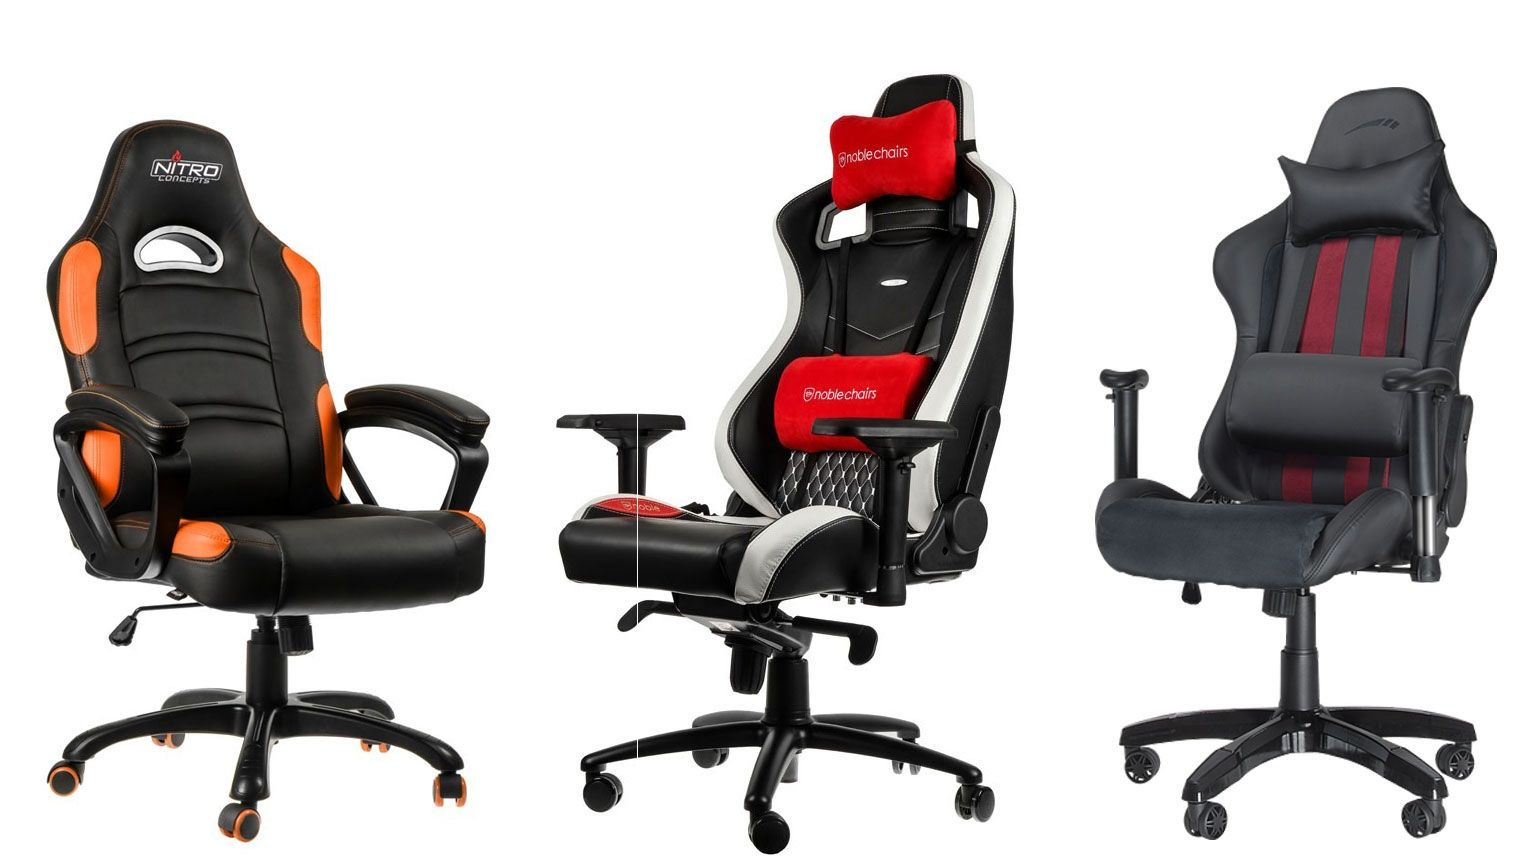 Priced To 1,4 M, This Are Top 5 Most Expensive Computer Chair Ever Exist | Roy Home Design